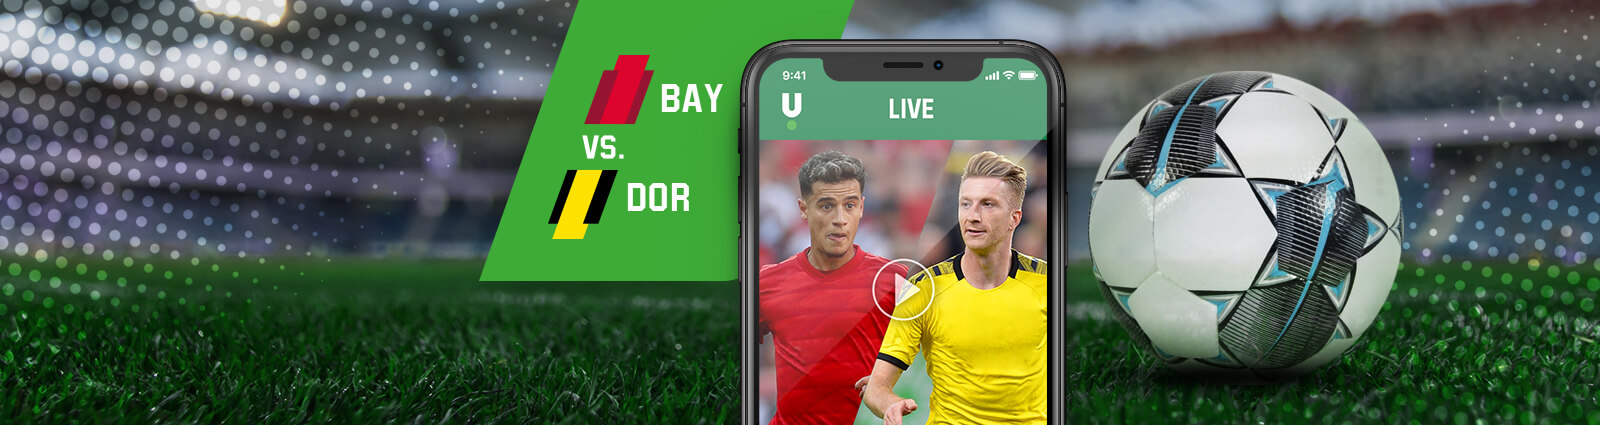 Promo page banner Unibet Football Bundesliga BAY vs DOR BE